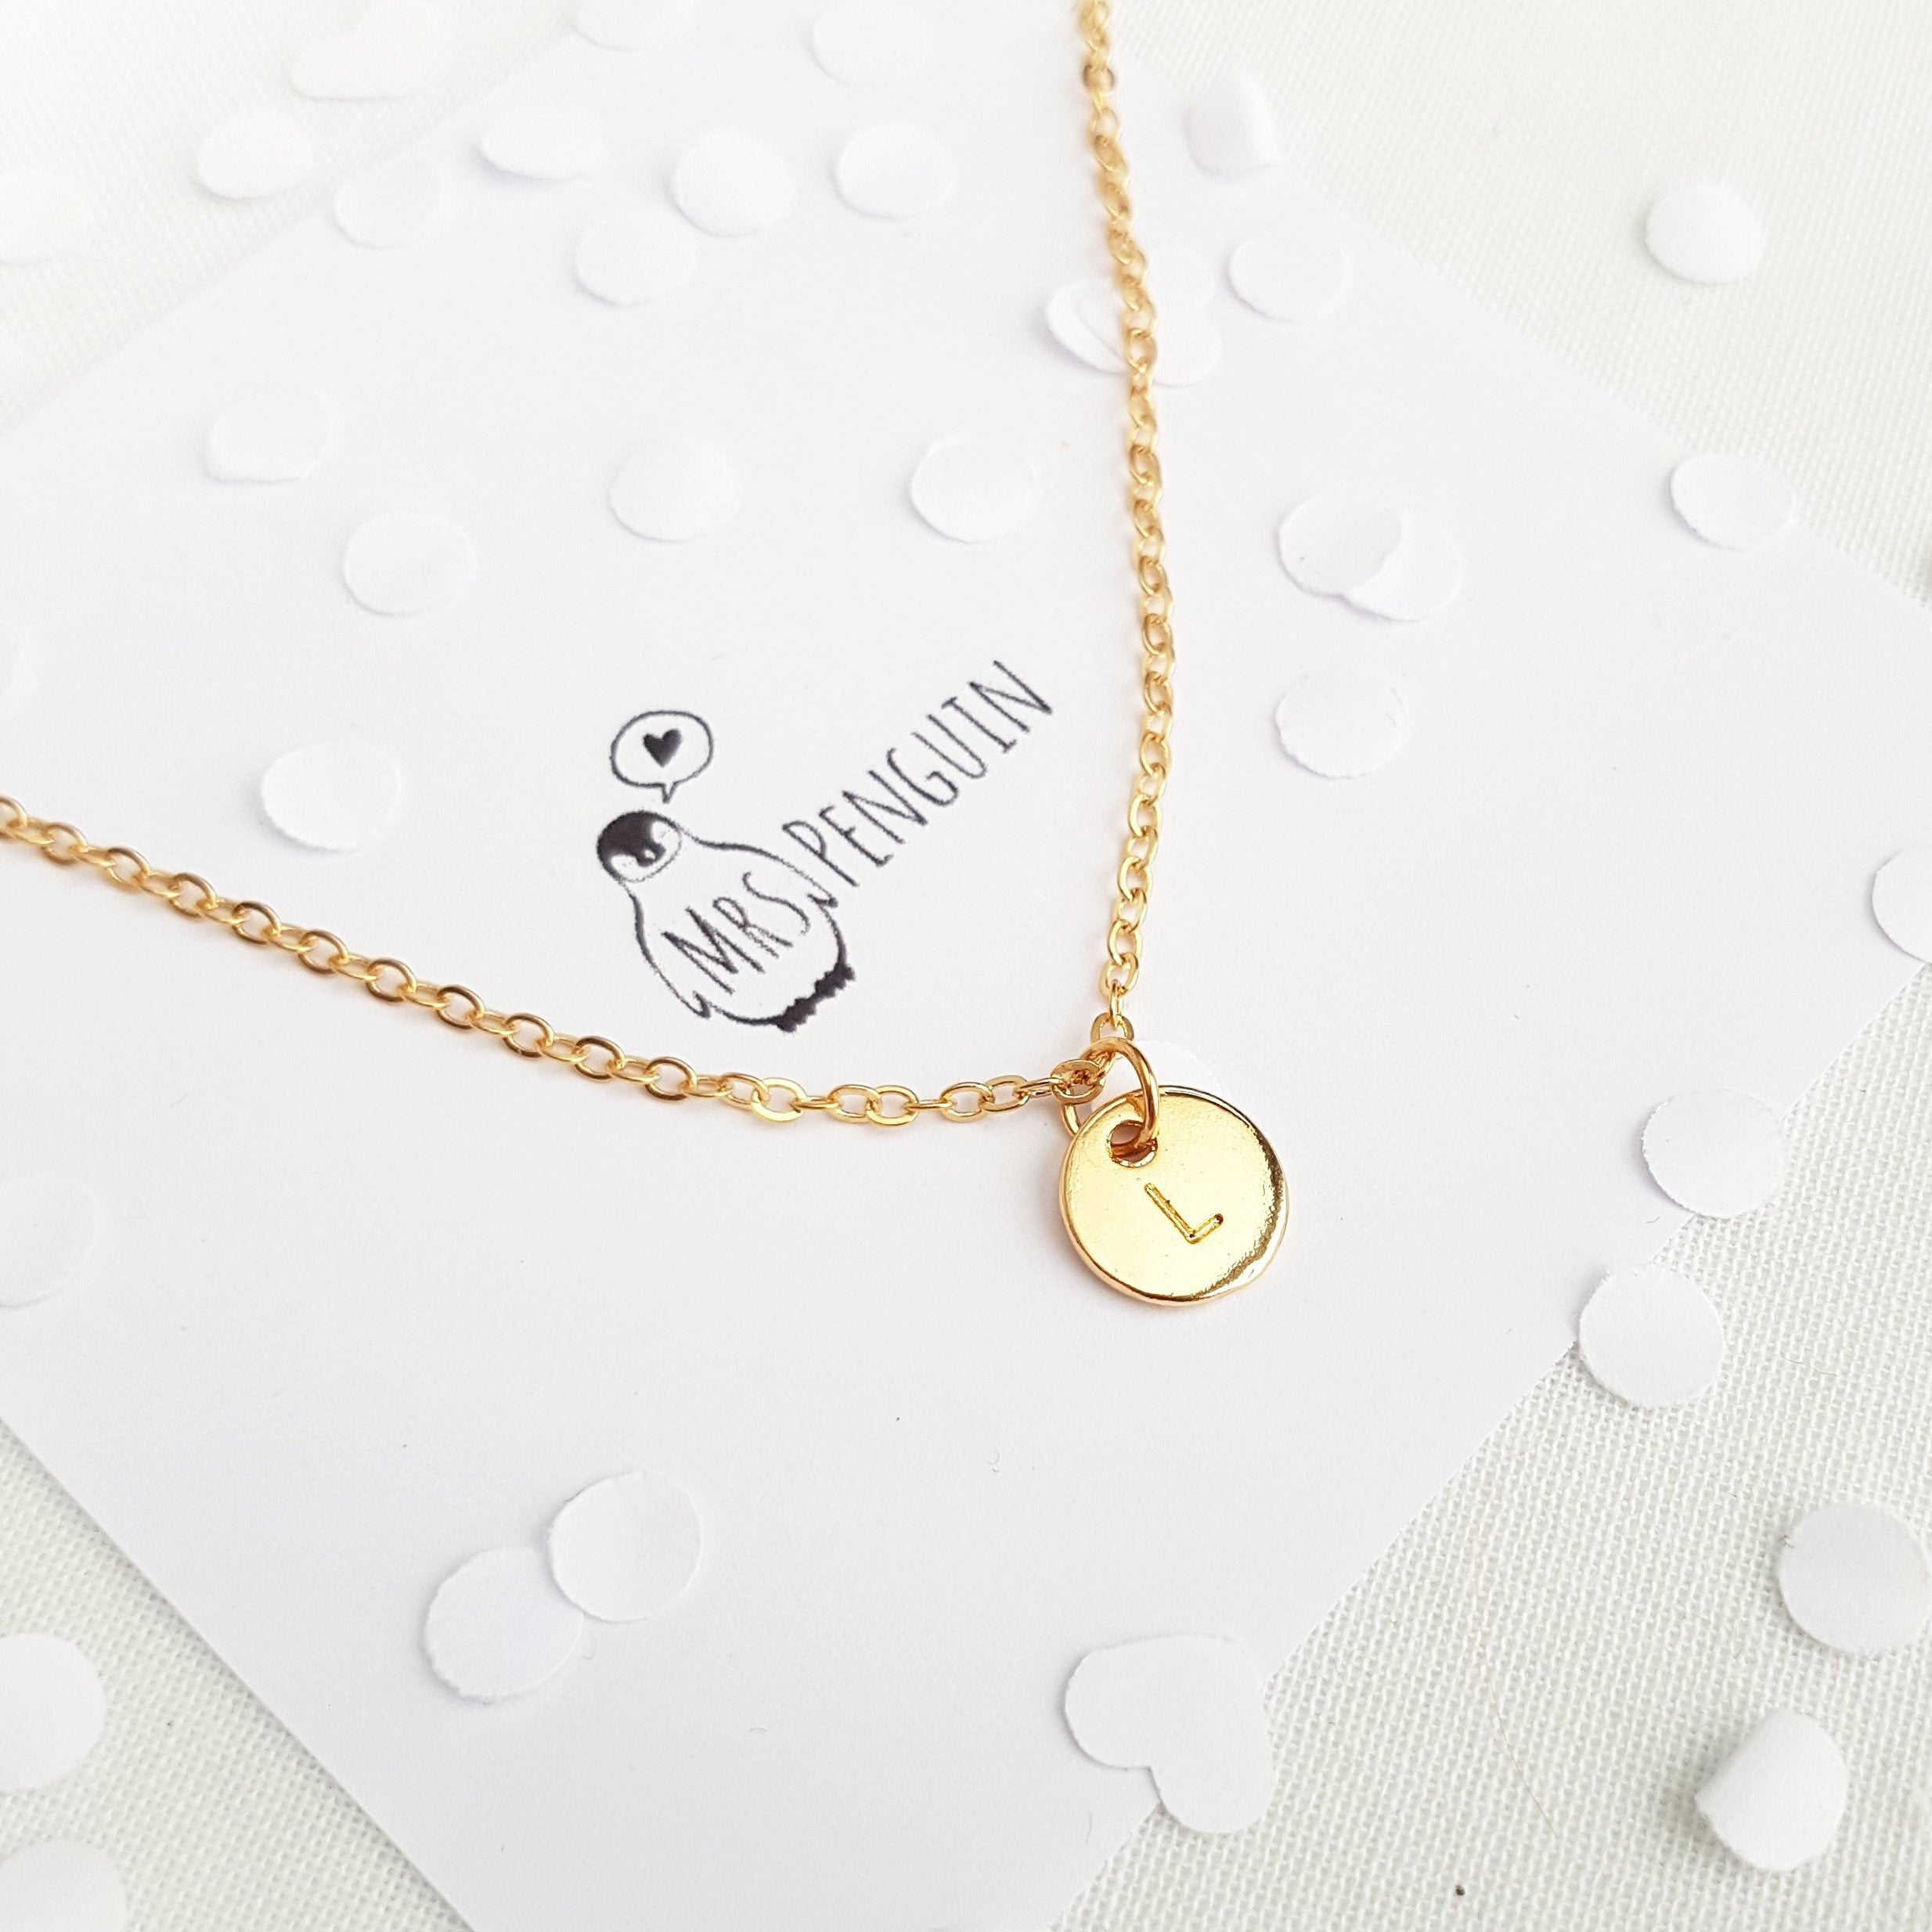 Mrs Penguin 'Personalized Initial' Necklace - Mrs-Penguin.com